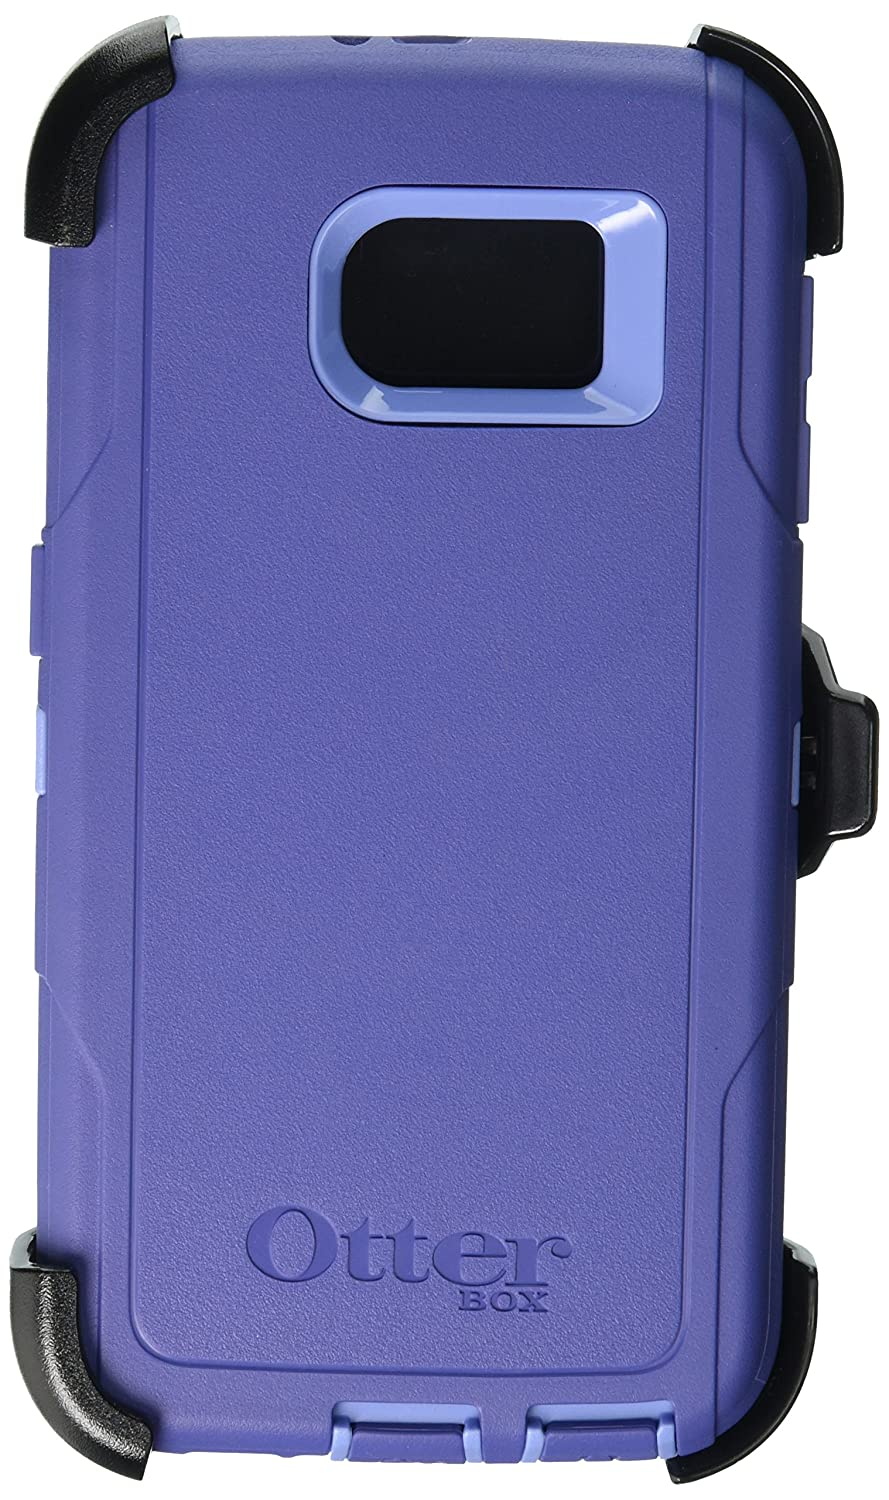 timeless design c1376 89e4c Otterbox Defender Series Case for Samsung Galaxy S6, Retail Packaging,  PURPLE AMETHYST